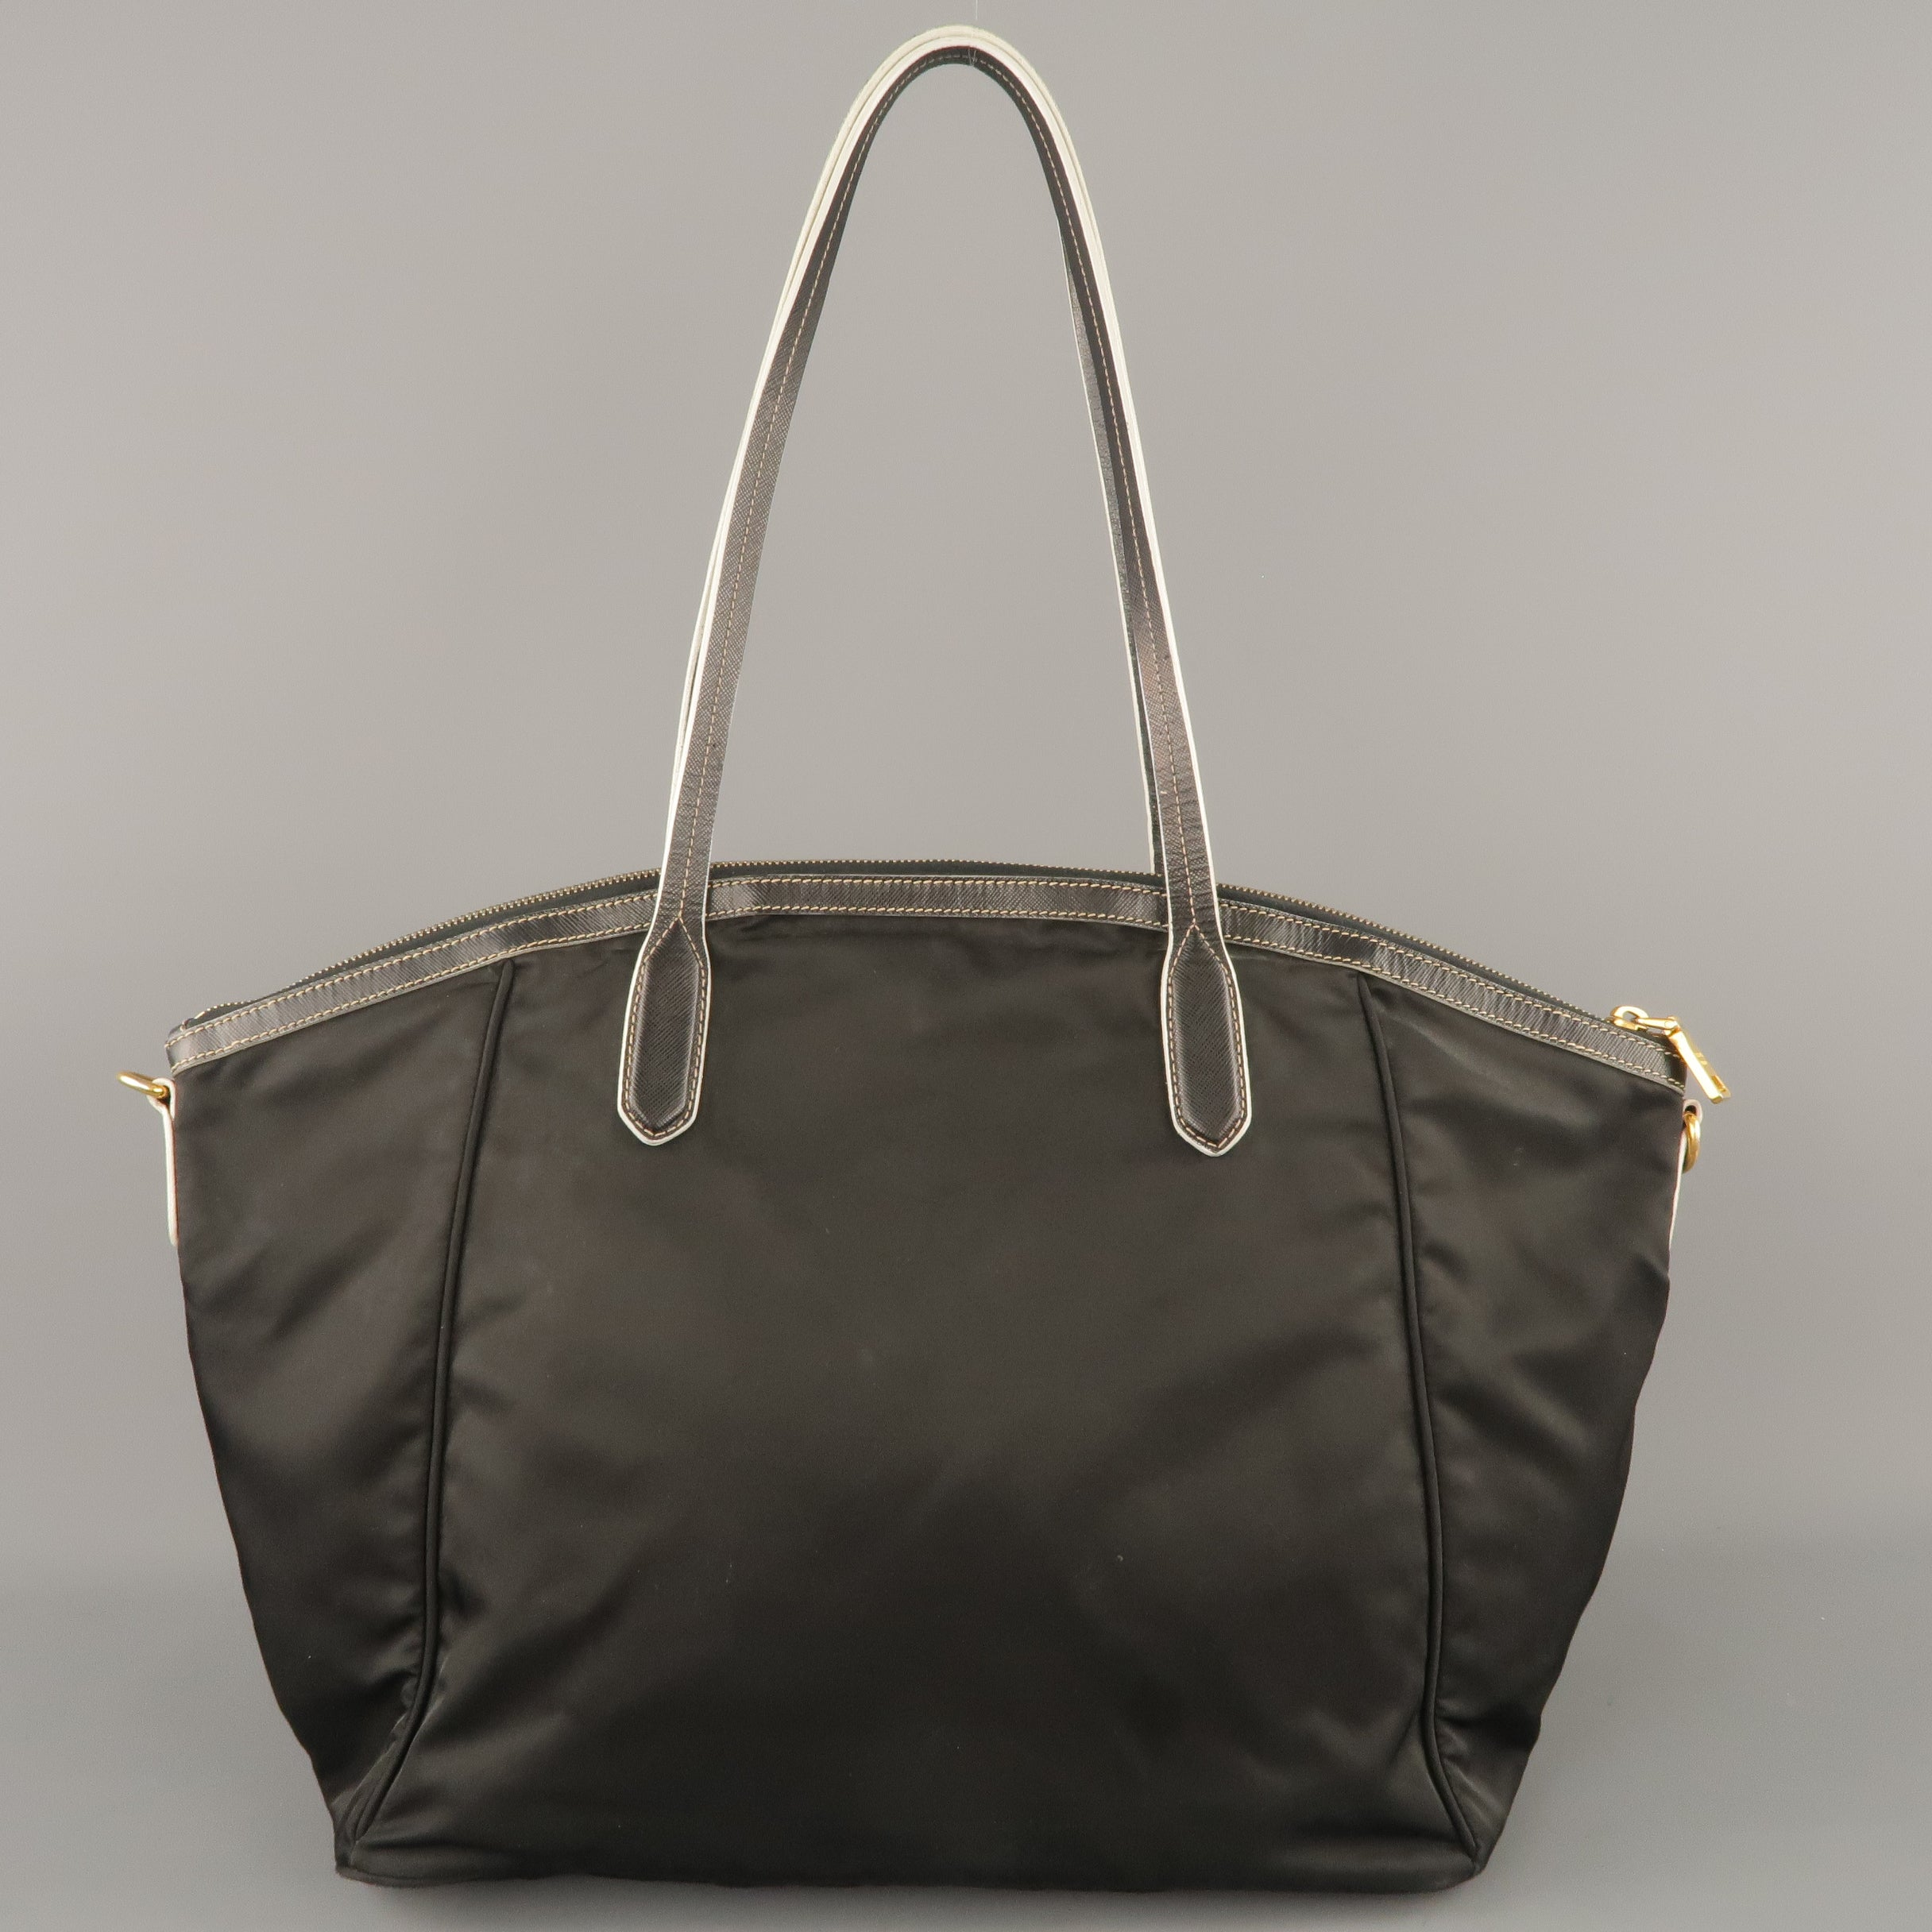 5da22464d2 PRADA Black Nylon and Leather Tote Handbag at 1stdibs